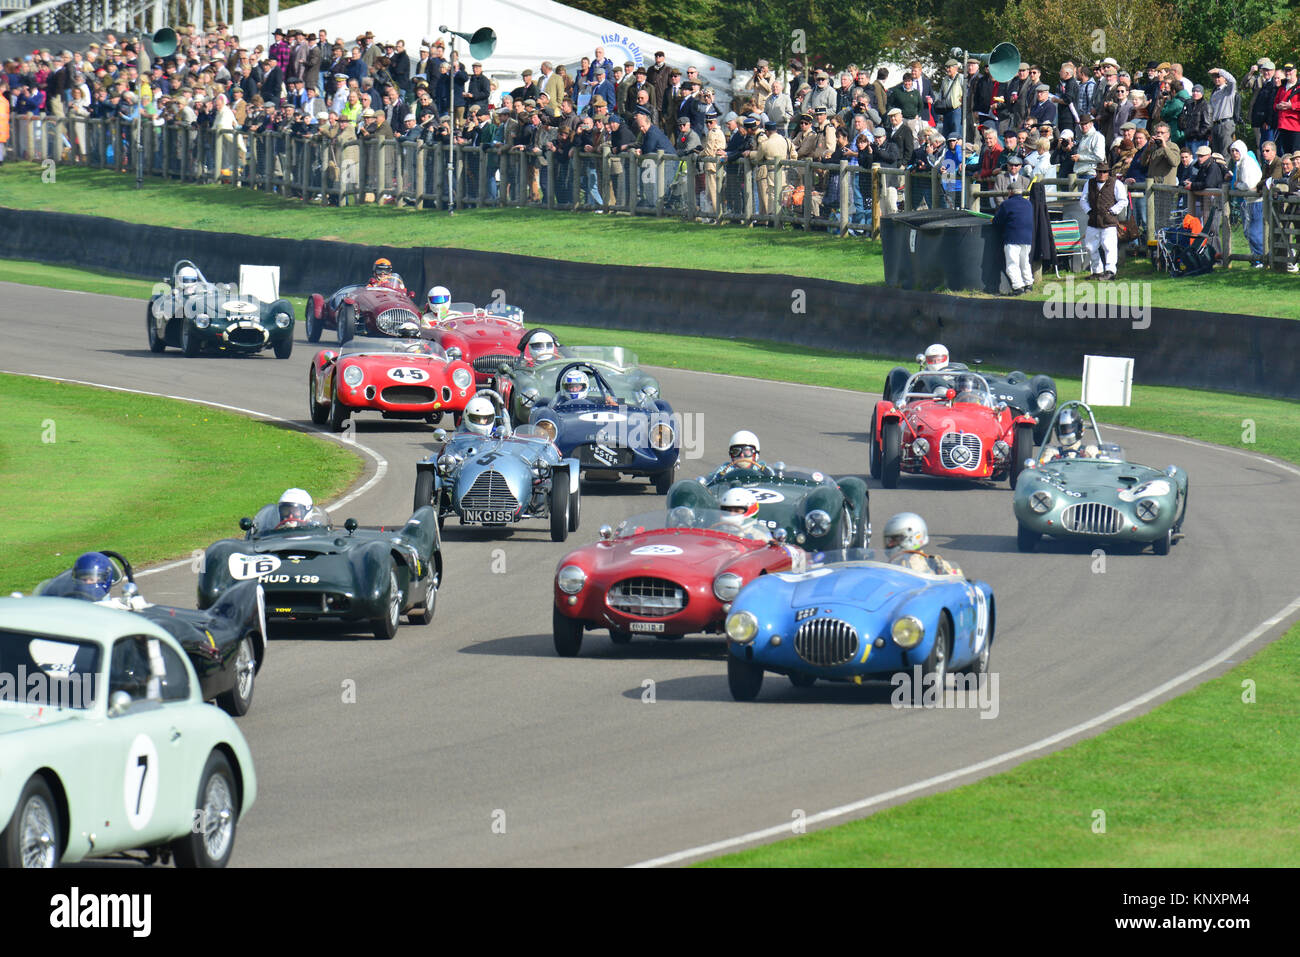 In Madgwick, madgwick Schale, Goodwood Revival 2013 Stockbild